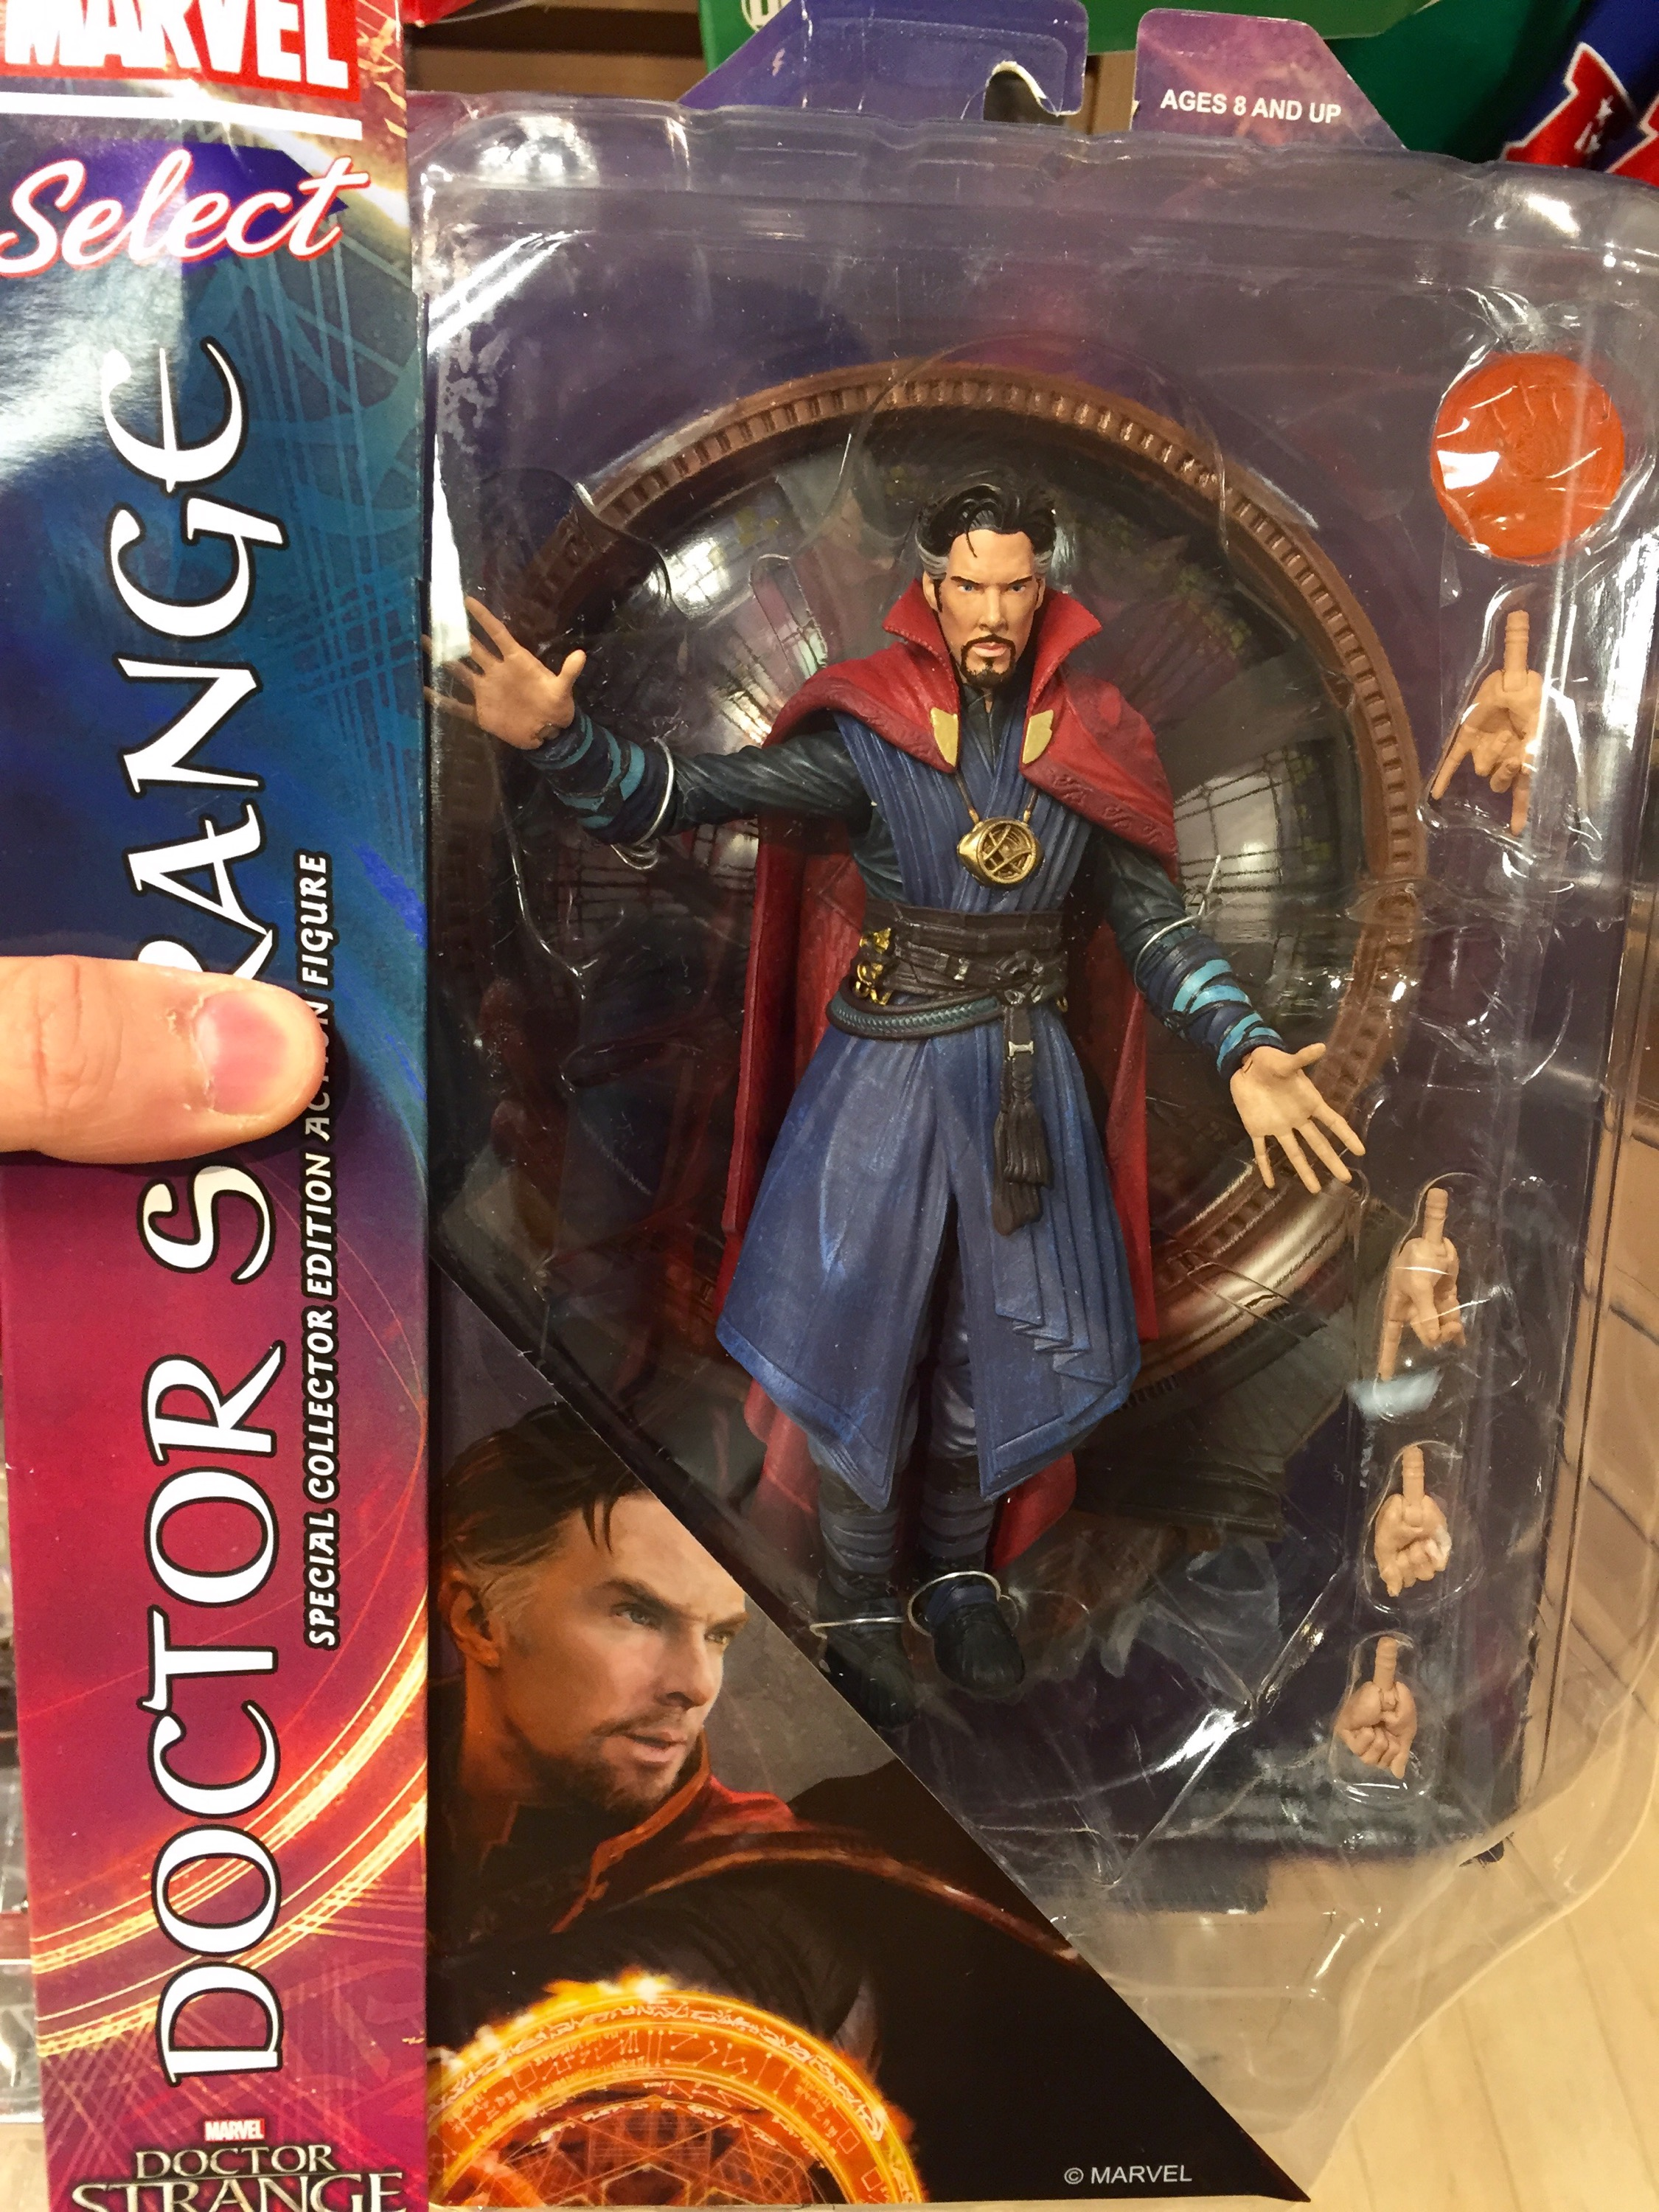 Diamond Select Toys Marvel Select Doctor Strange Movie 7in Action Figure